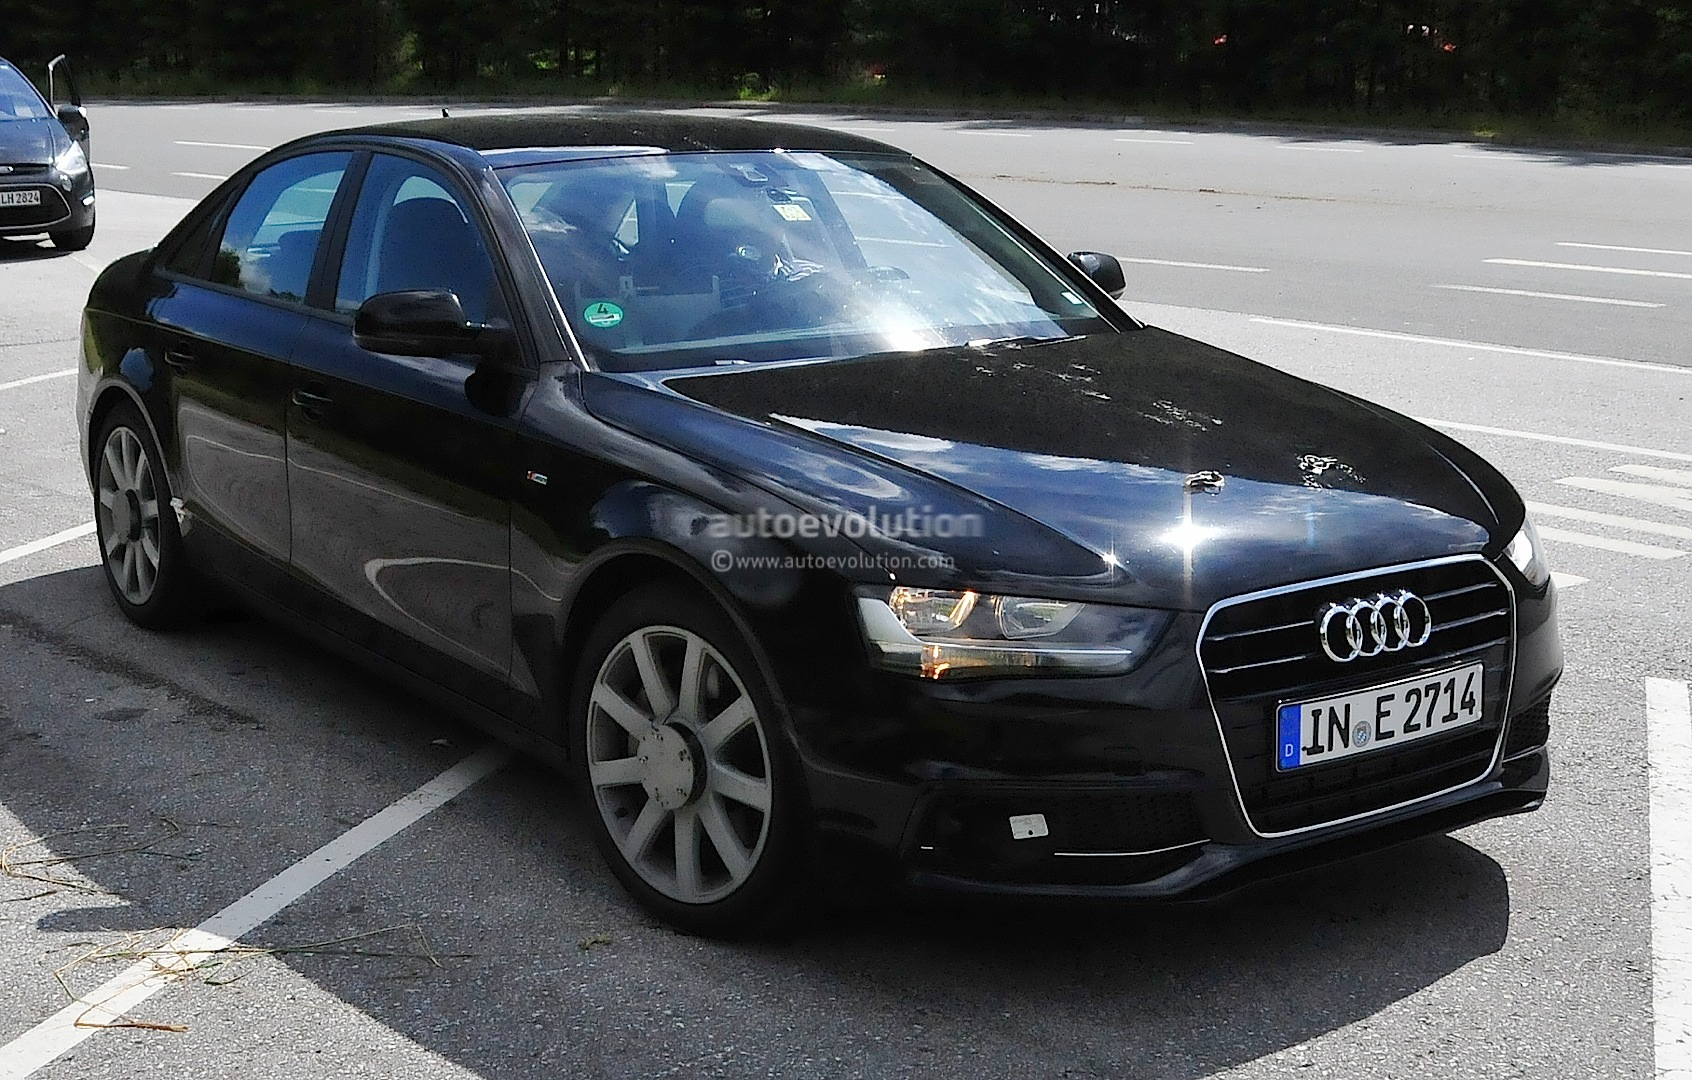 2016 Audi A4 Spyshots Reveal New Mmi Infotainment Display